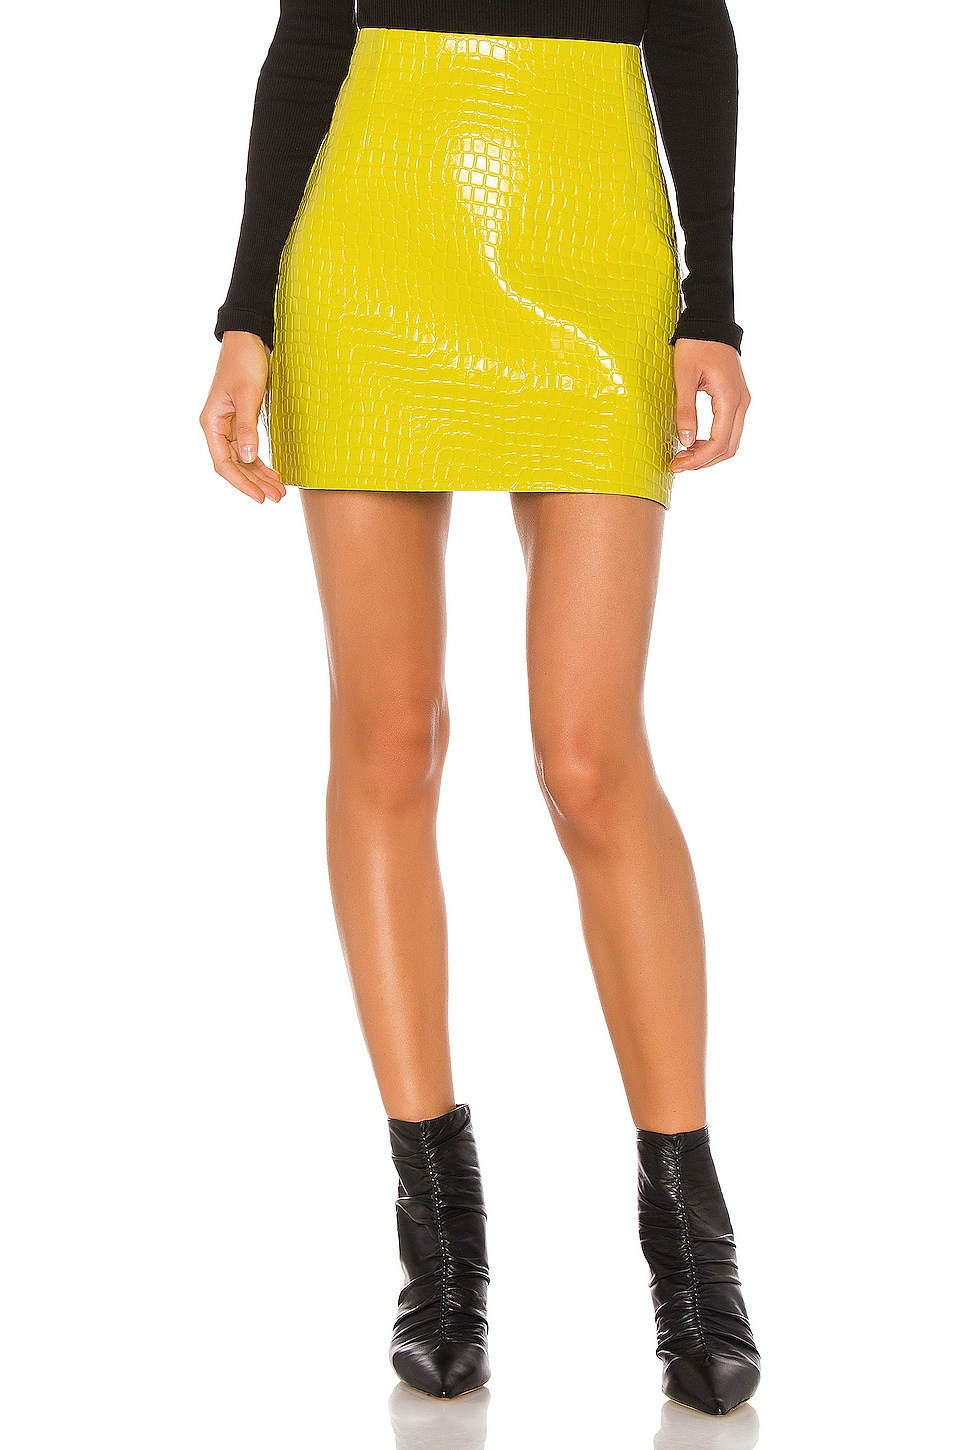 Tibi Croc Embossed Patent Mini Skirt in Yellow